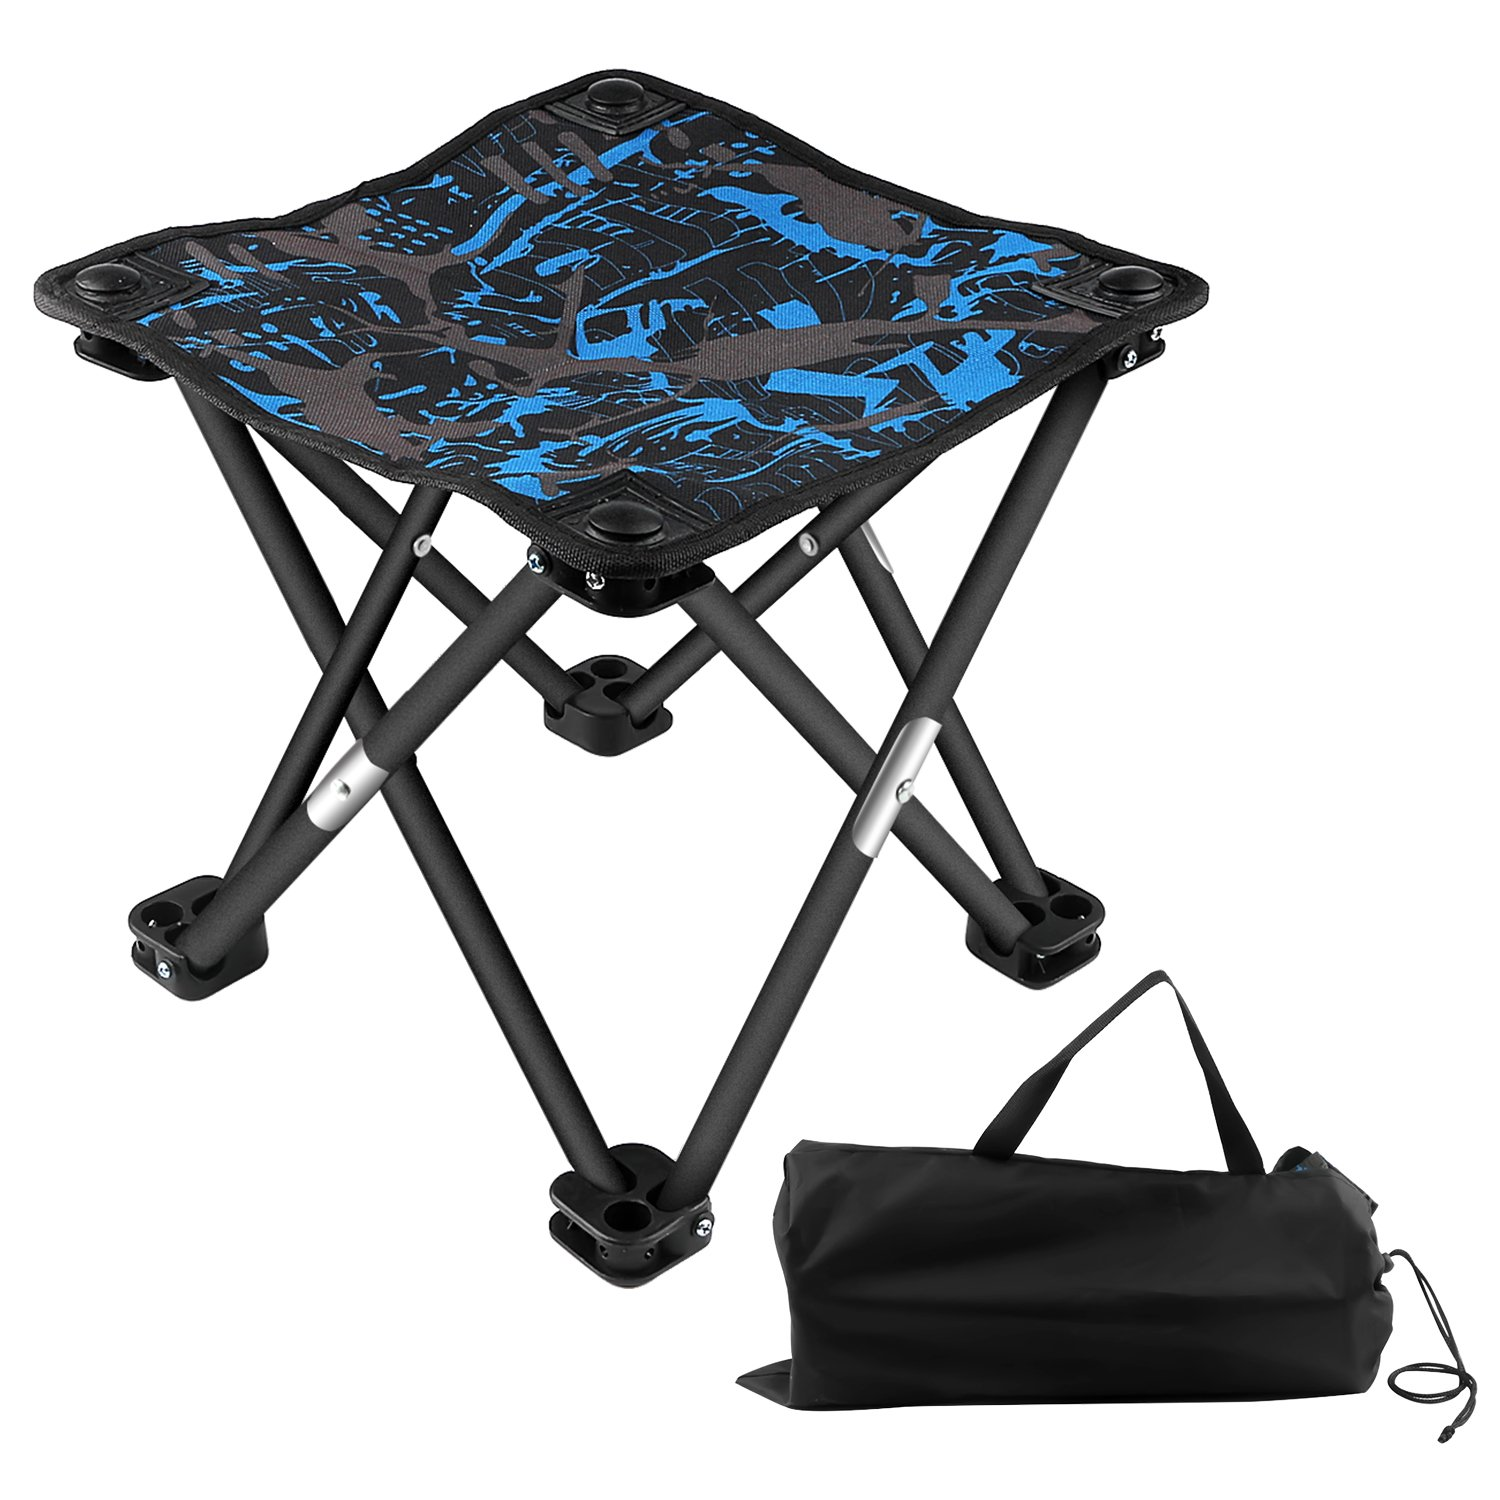 BlueStraw Portable Folding Stool Slacker Chair, Mini Ultralight Outdoor Folding Chair for Camping Fishing Travel Hiking Garden, Quickly-Fold Oxford Stool with Carry Bag